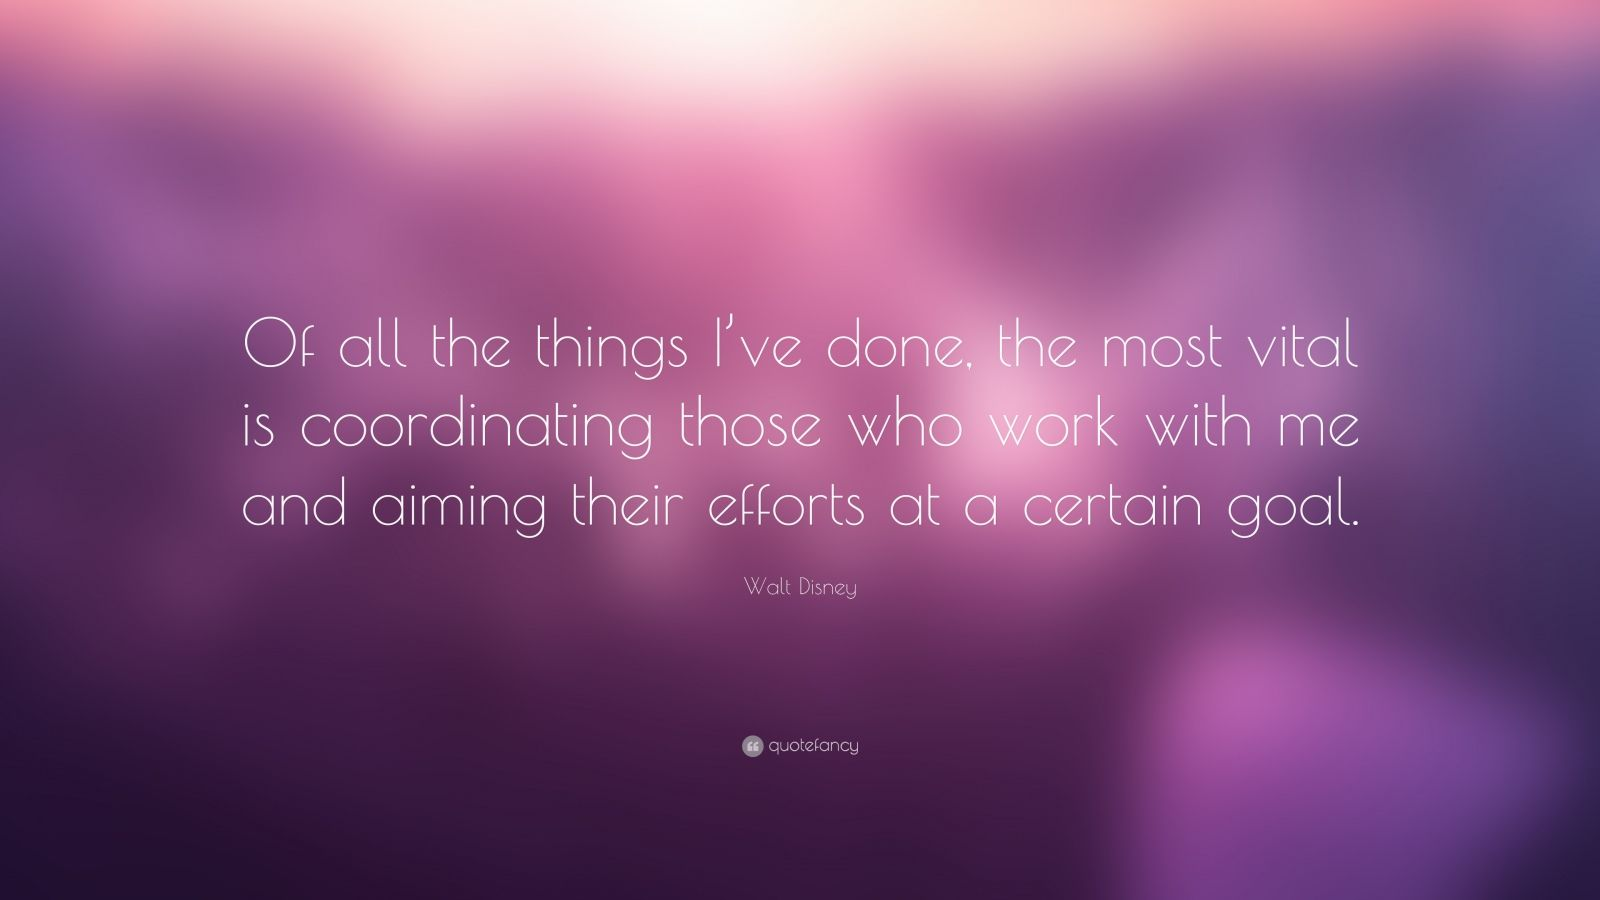 """Walt Disney Quote: """"Of all the things I've done, the most vital is coordinating those who work with me and aiming their efforts at a certain goal."""""""